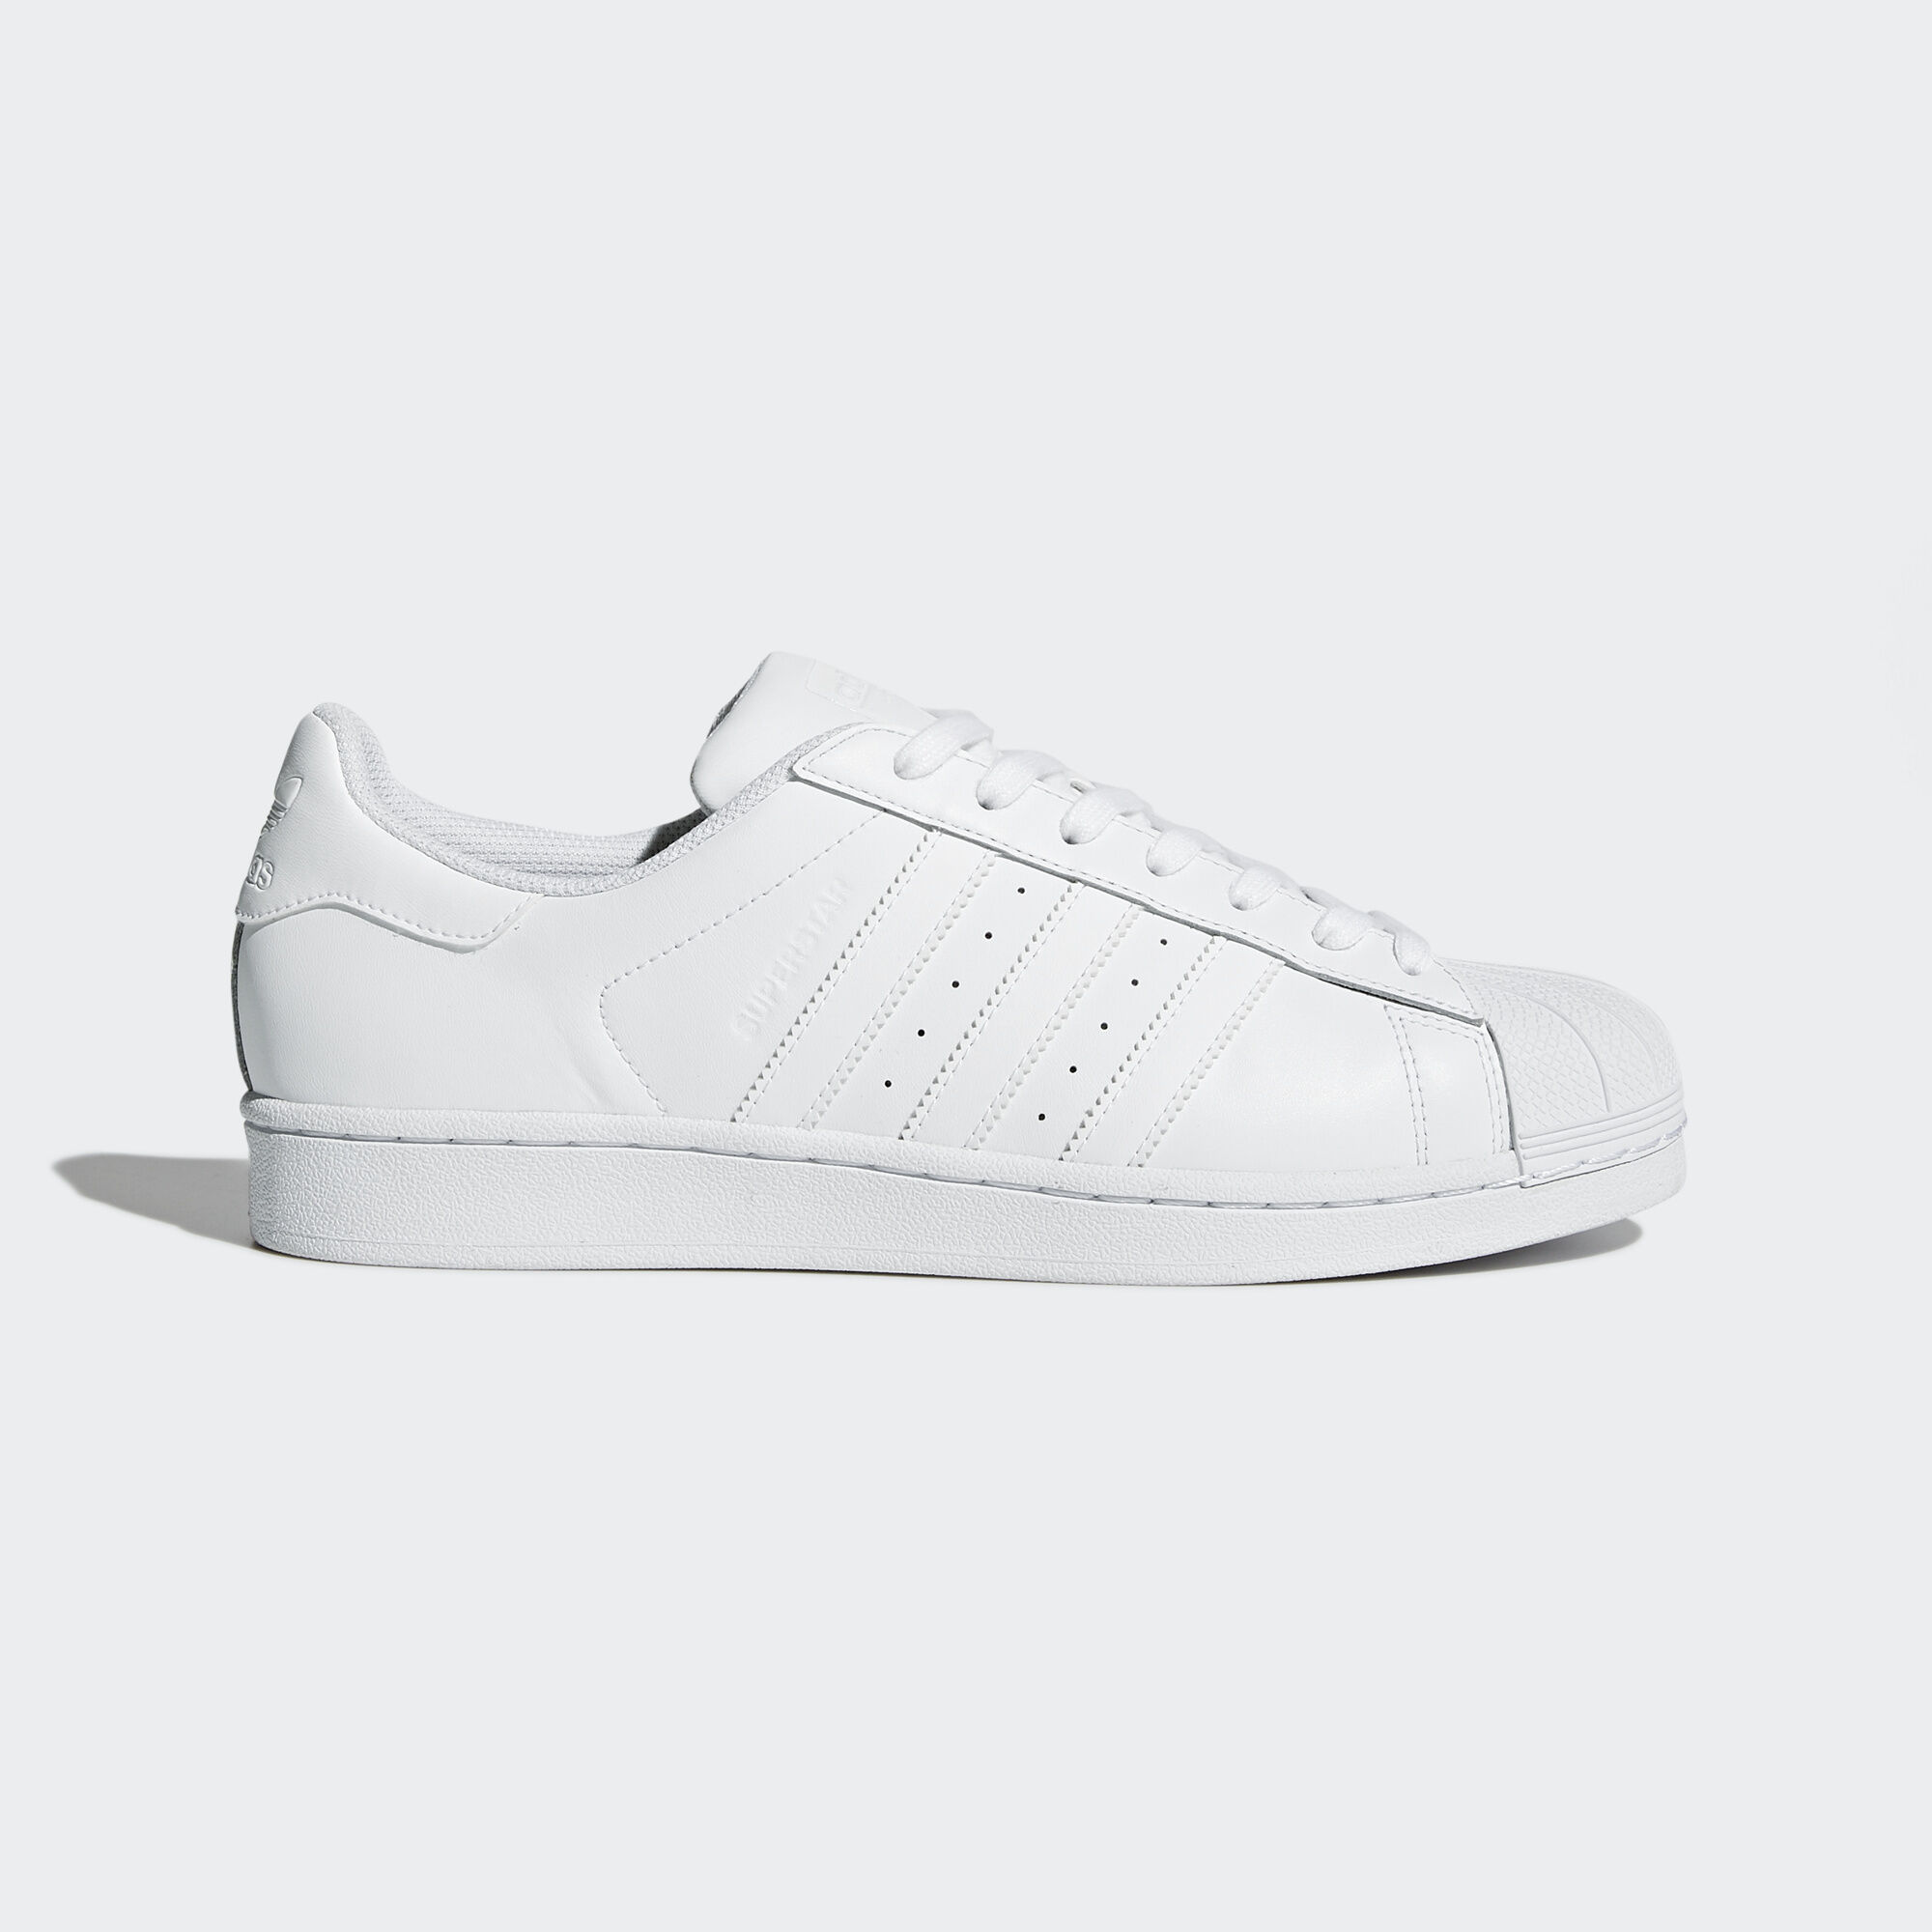 adidas superstar mens